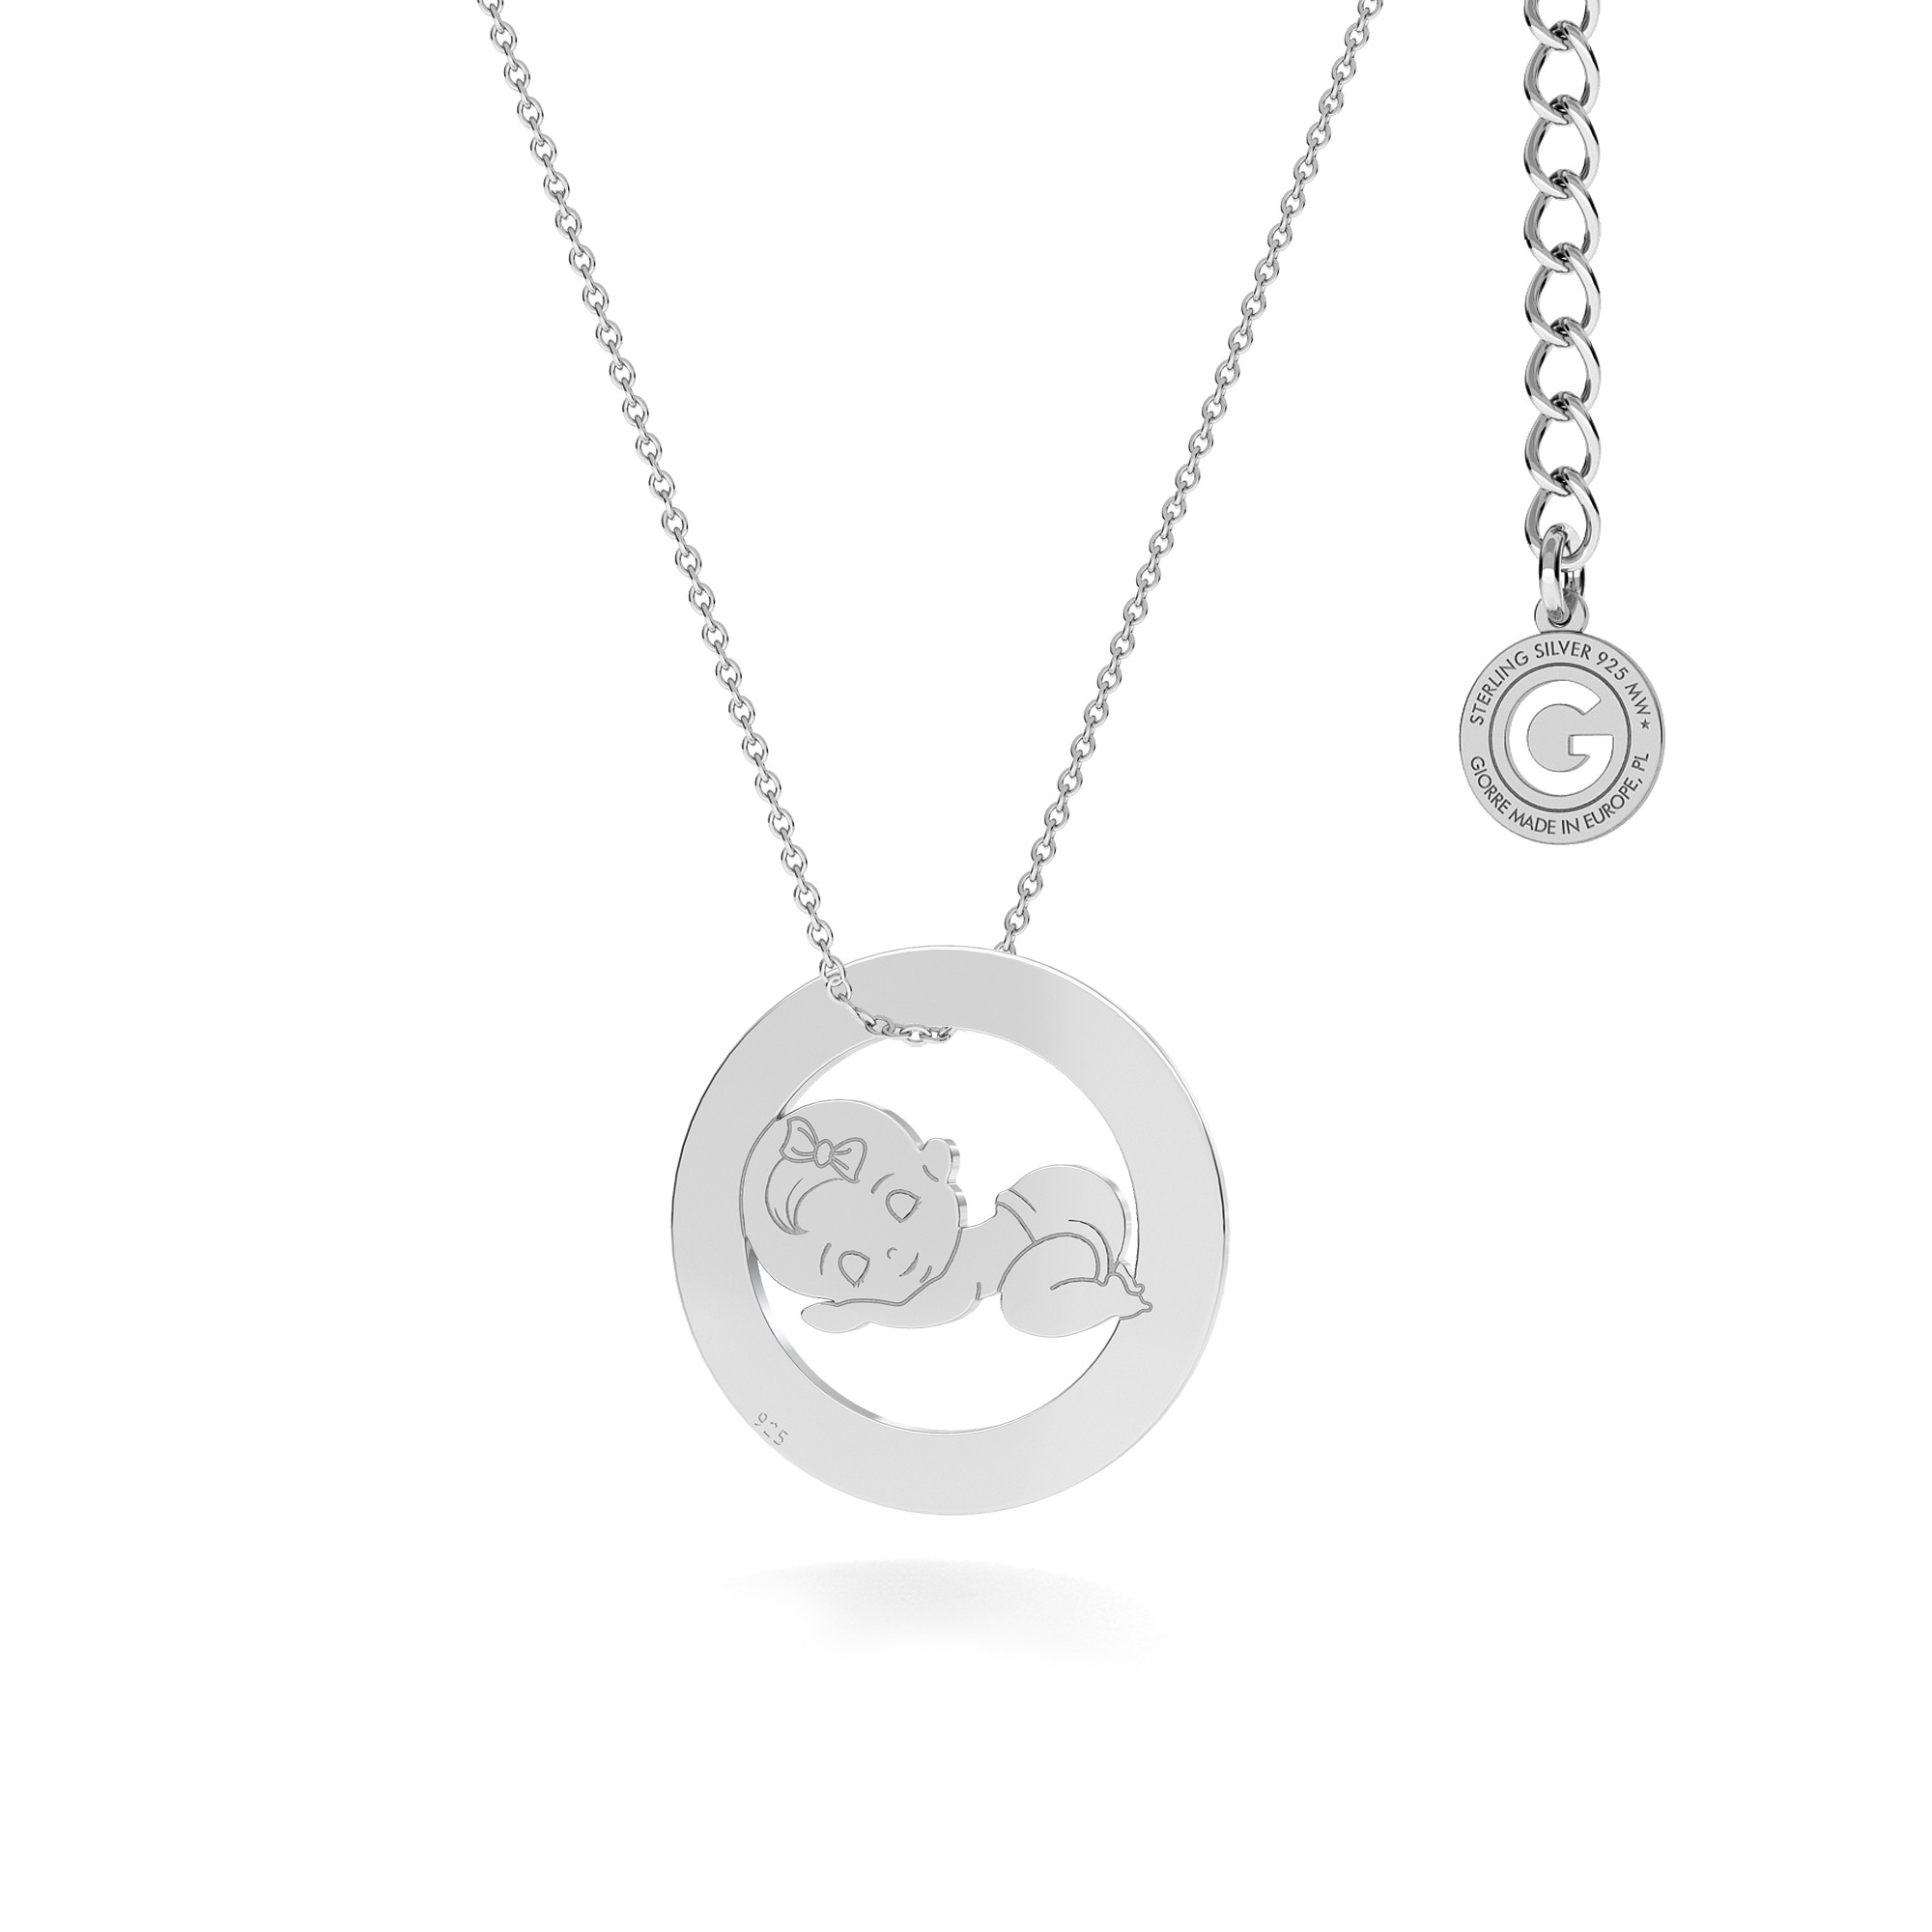 Necklace for mother & child, boy engraveing, sterling silver 925